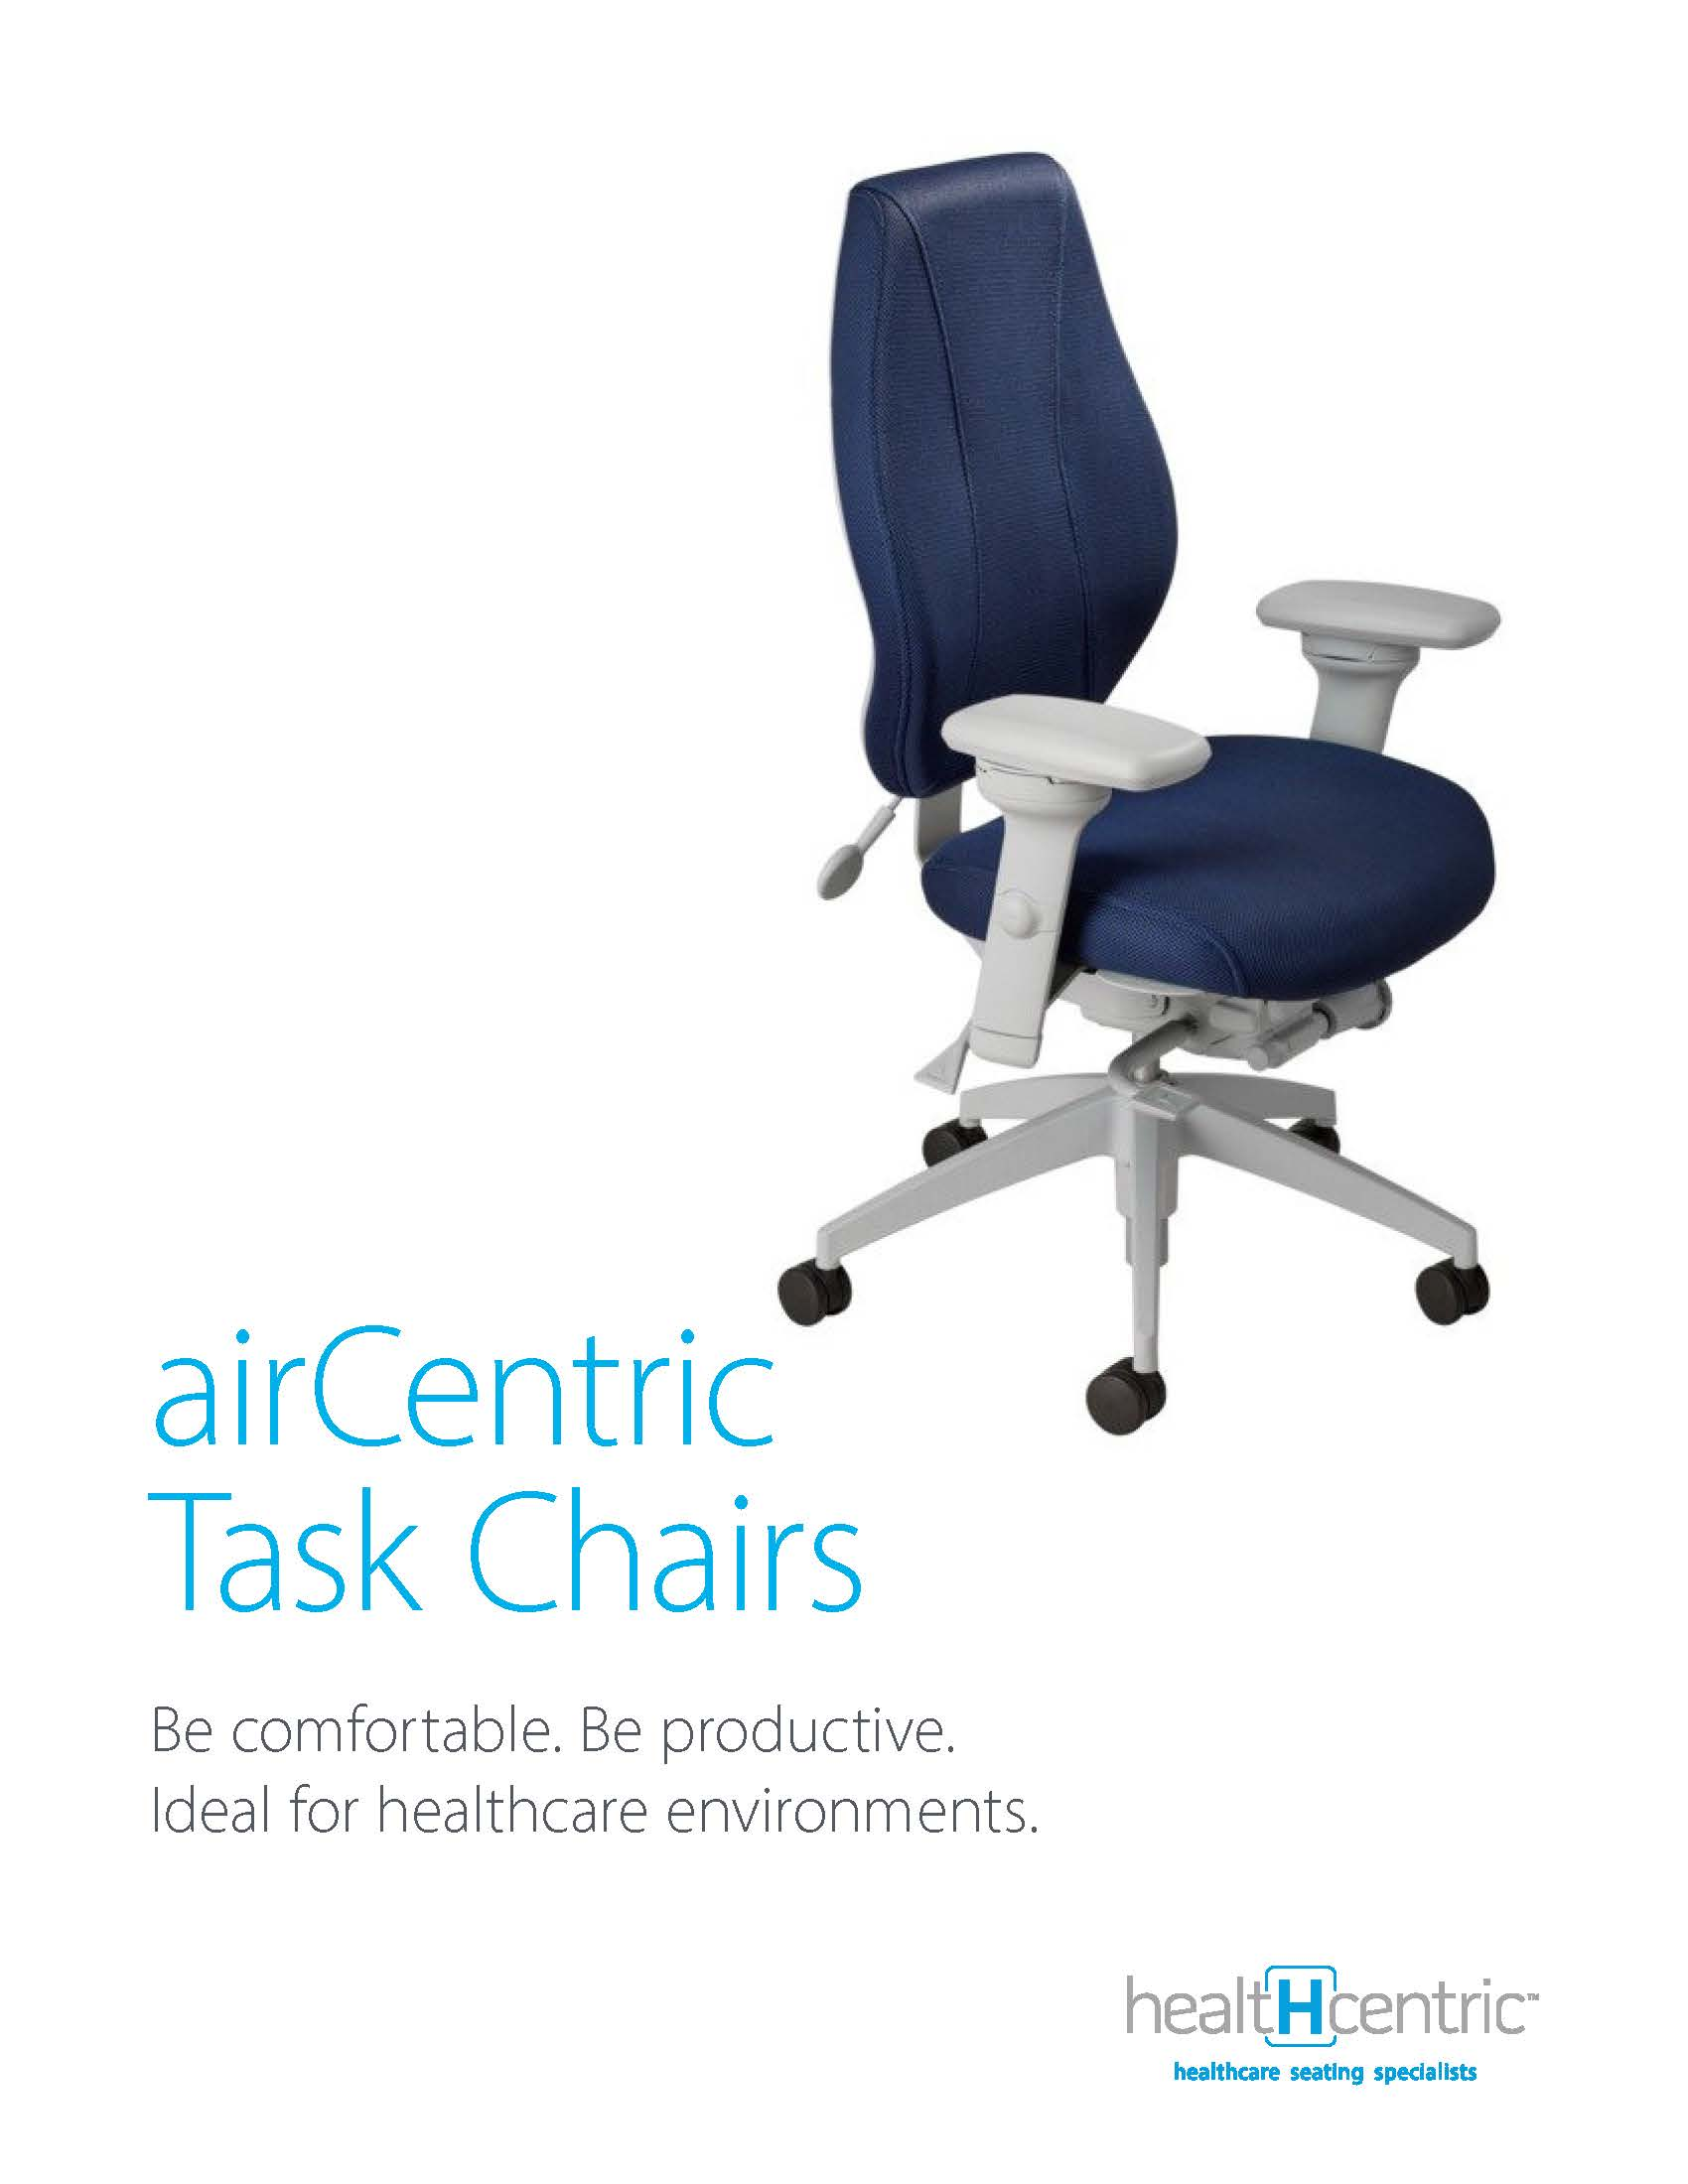 airCentric Task Chairs